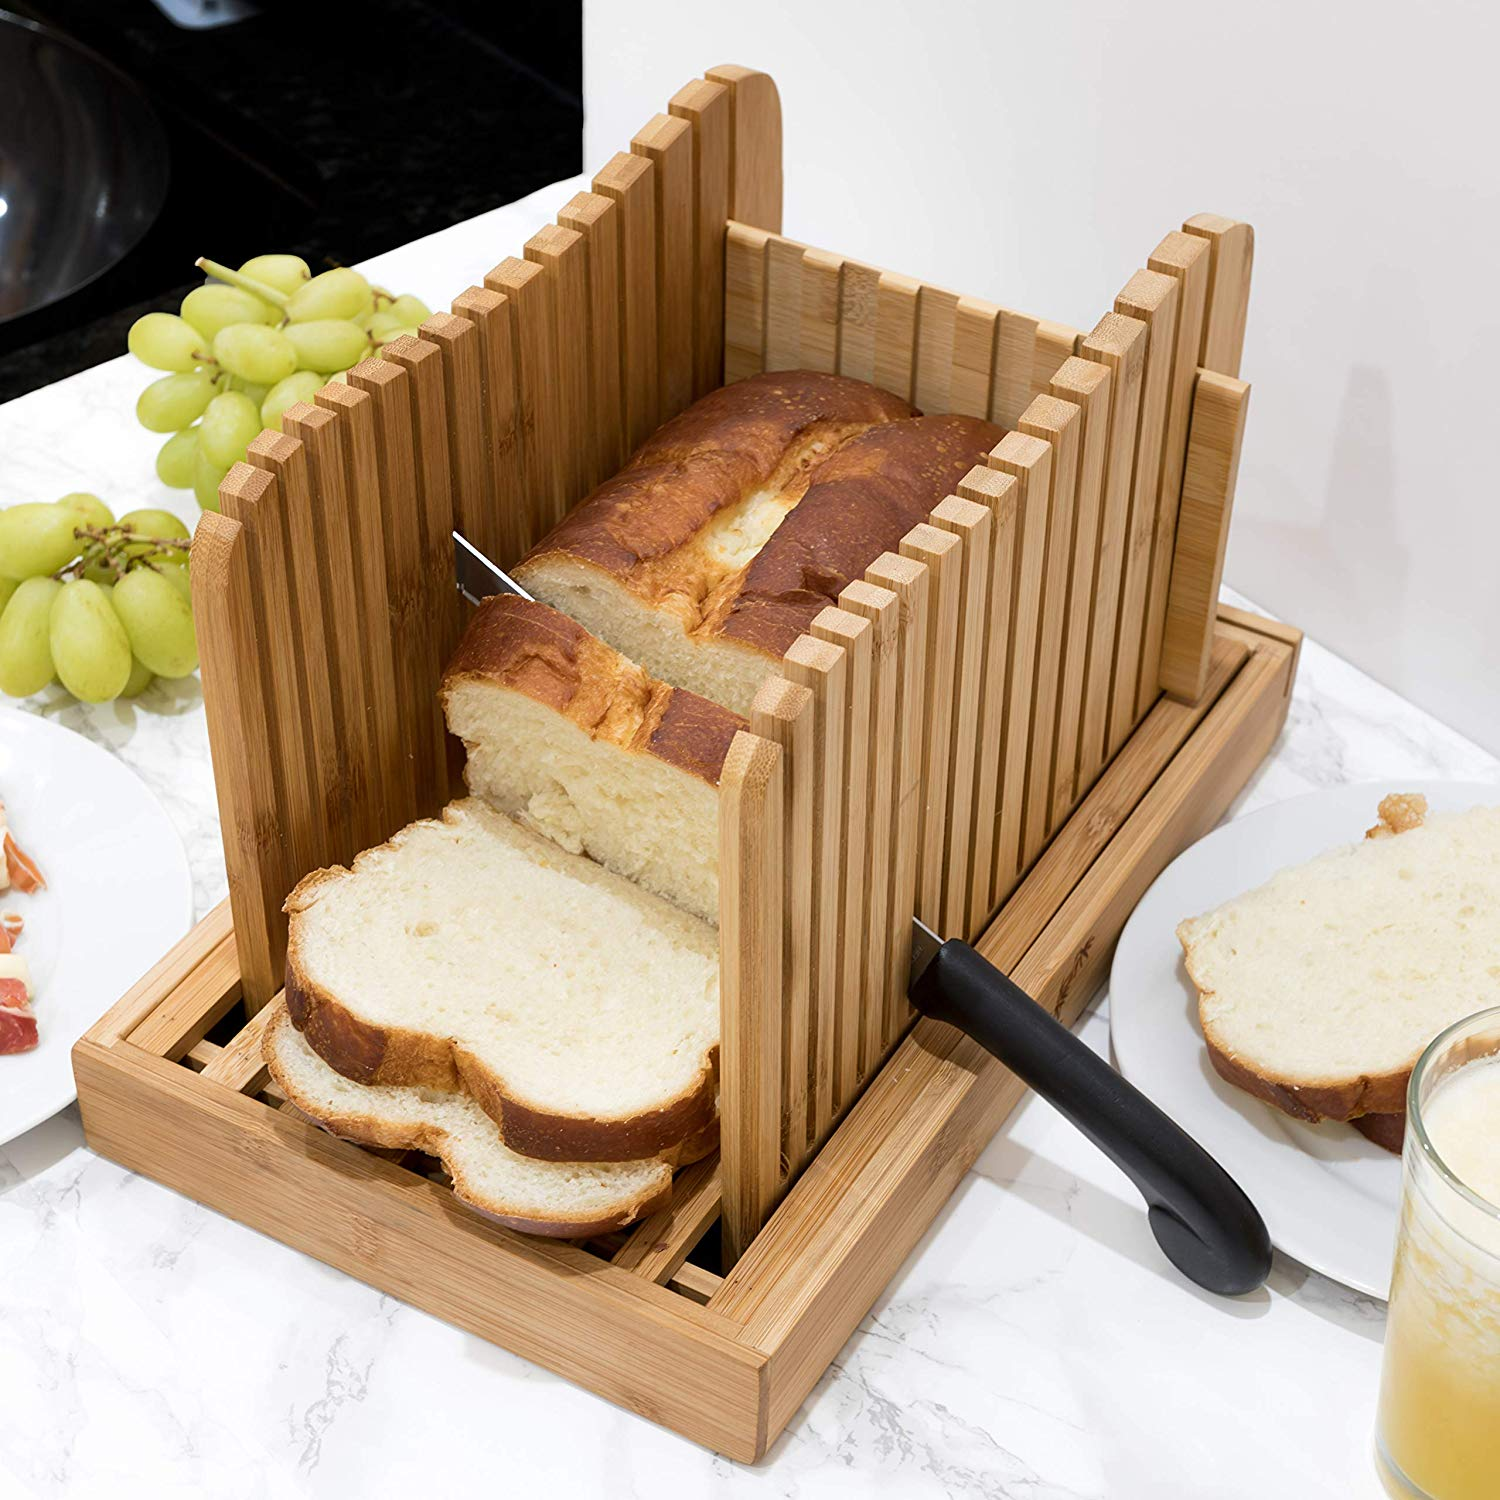 1st Place Premium Bamboo Bread Slicer - Adjustable to your Bread Size - 4 Bread Width Sizes - Compact & Foldable